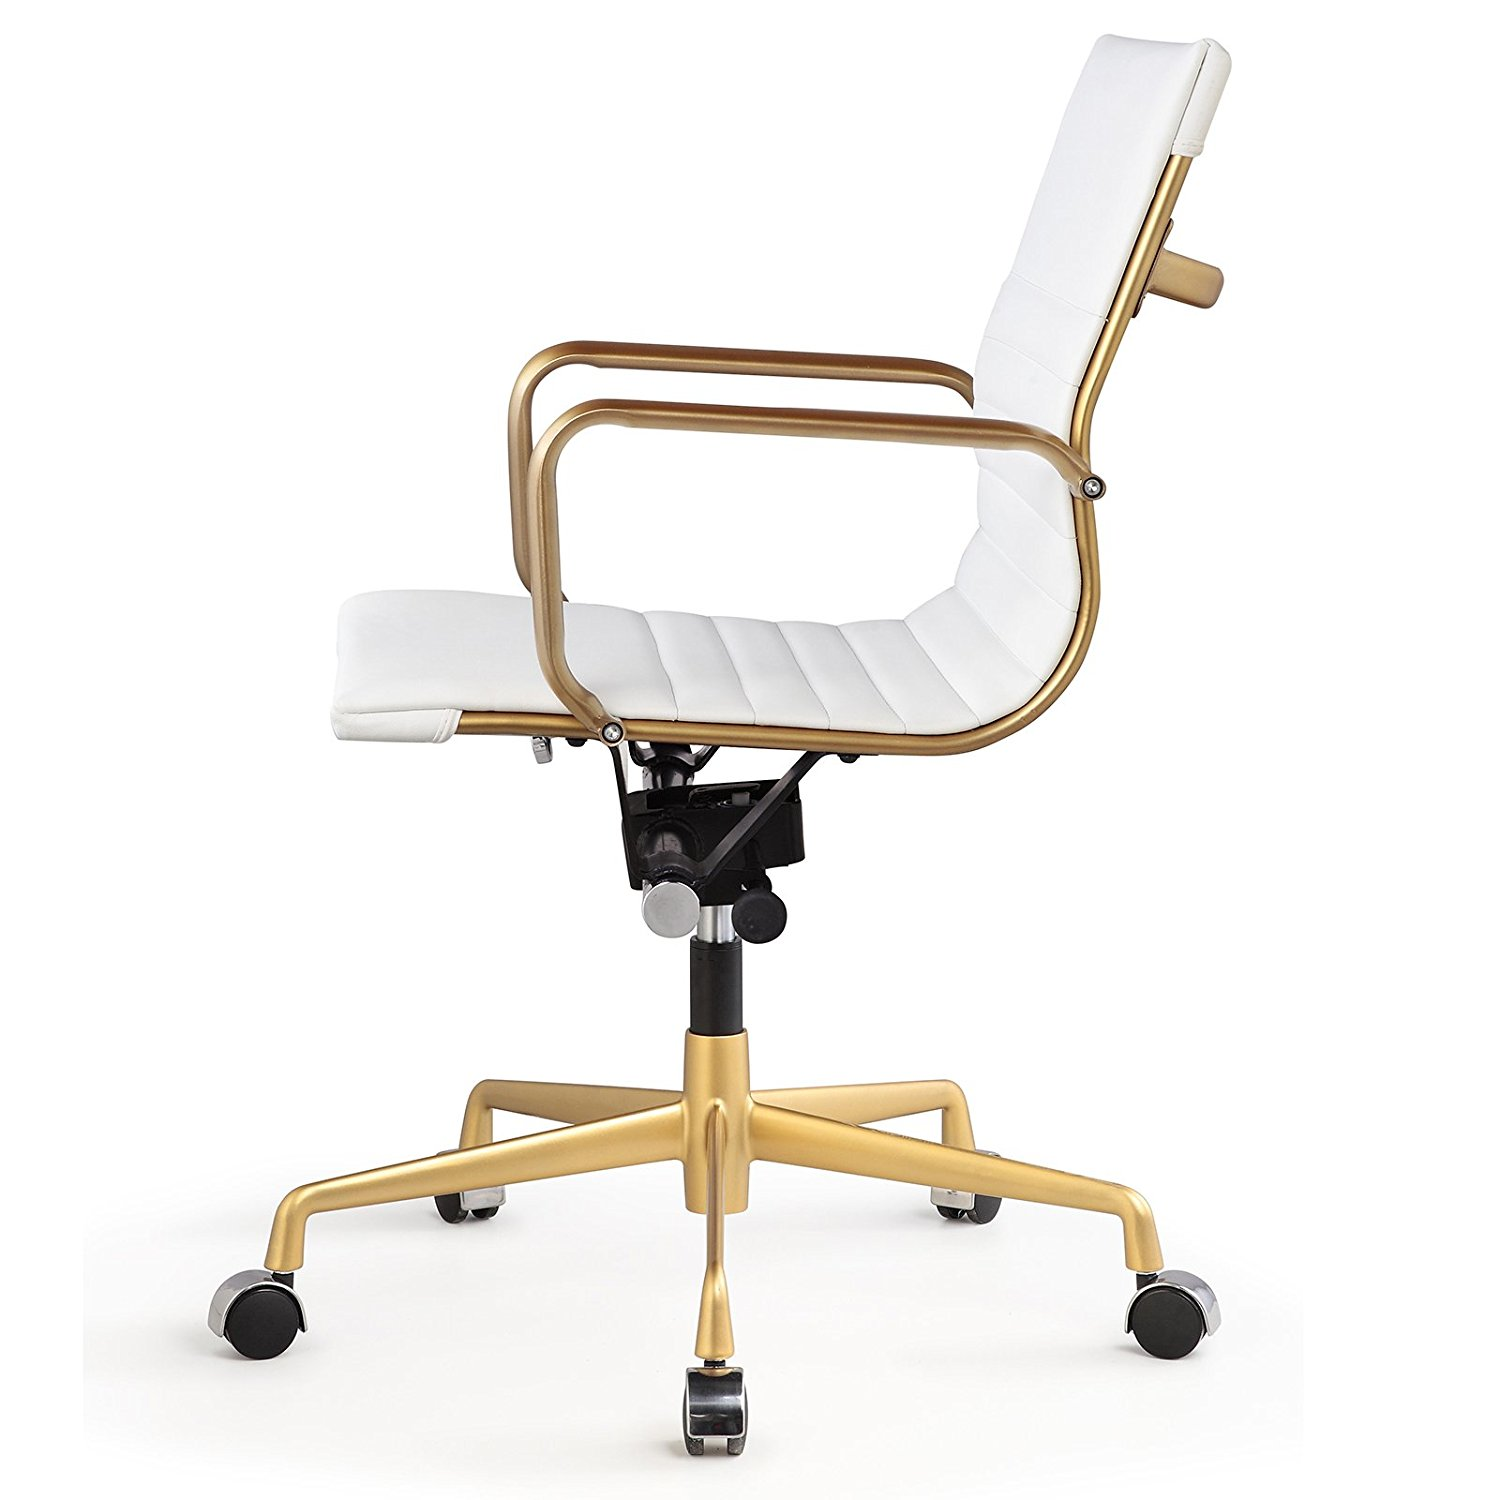 Meelano M348 Office Chair In Gold And White Vegan Leather Walmartcom